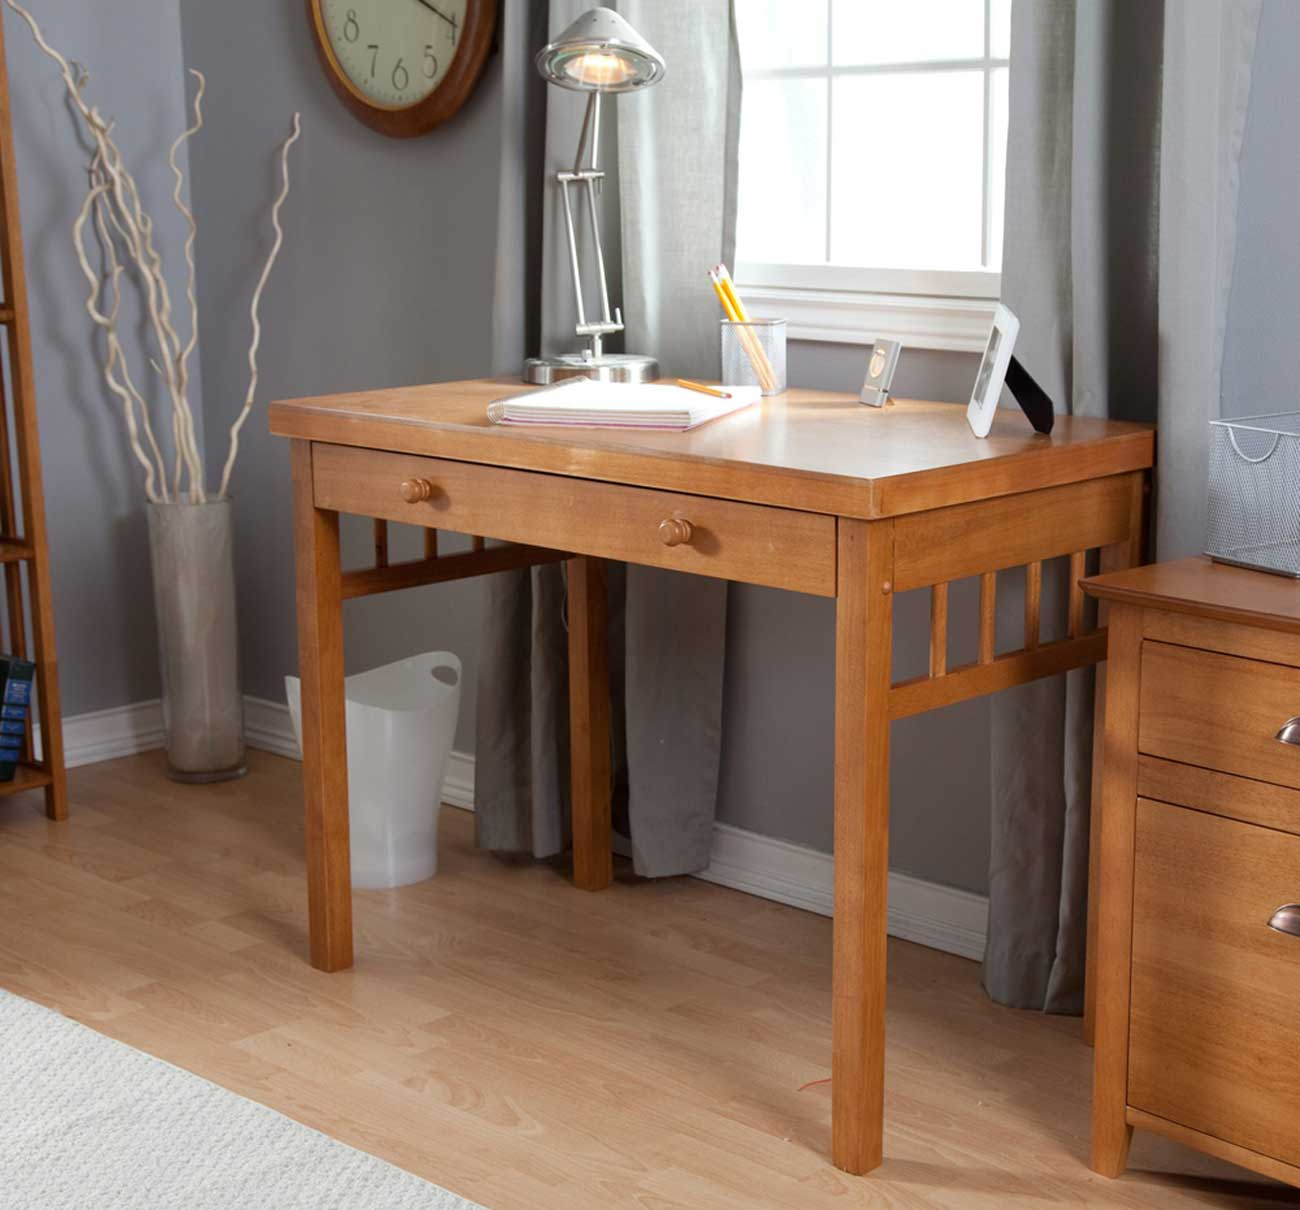 Hadley mission home office small oak desk